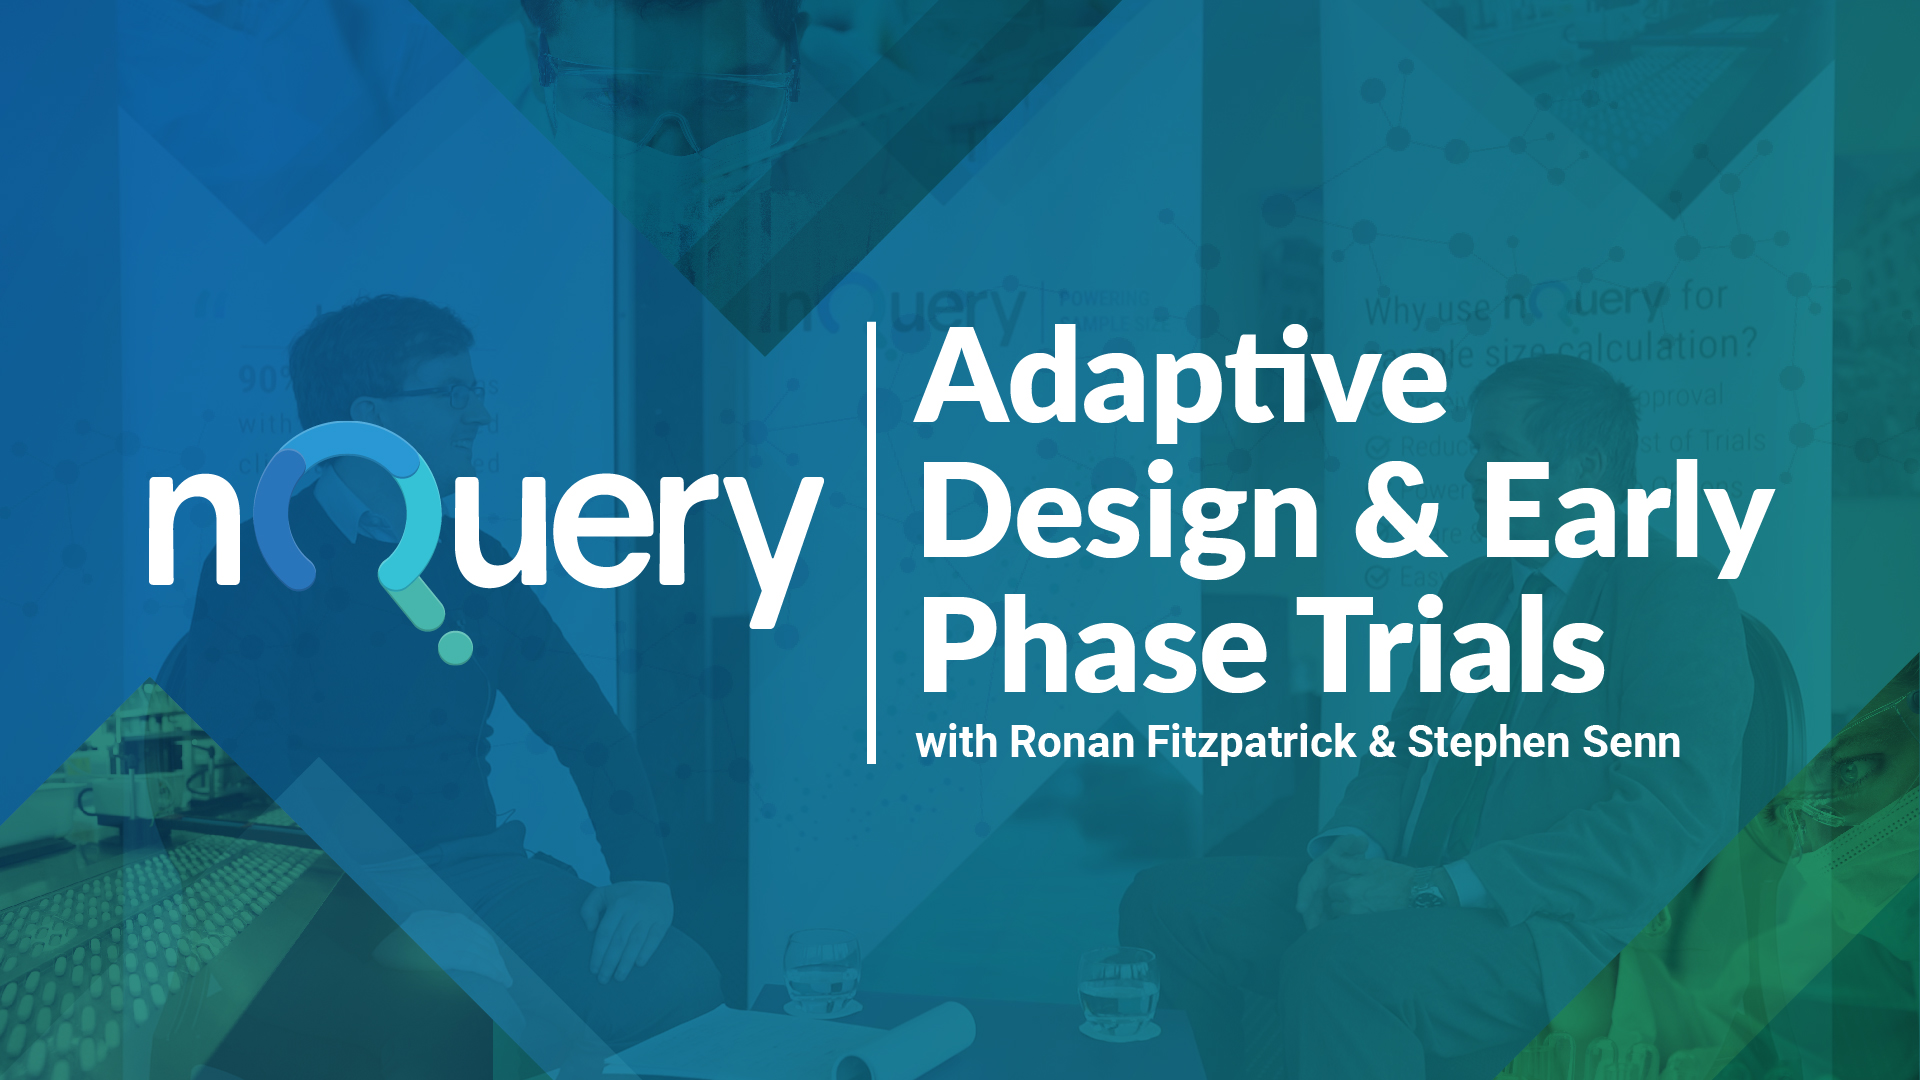 Adaptive Design and Early Phase Trials